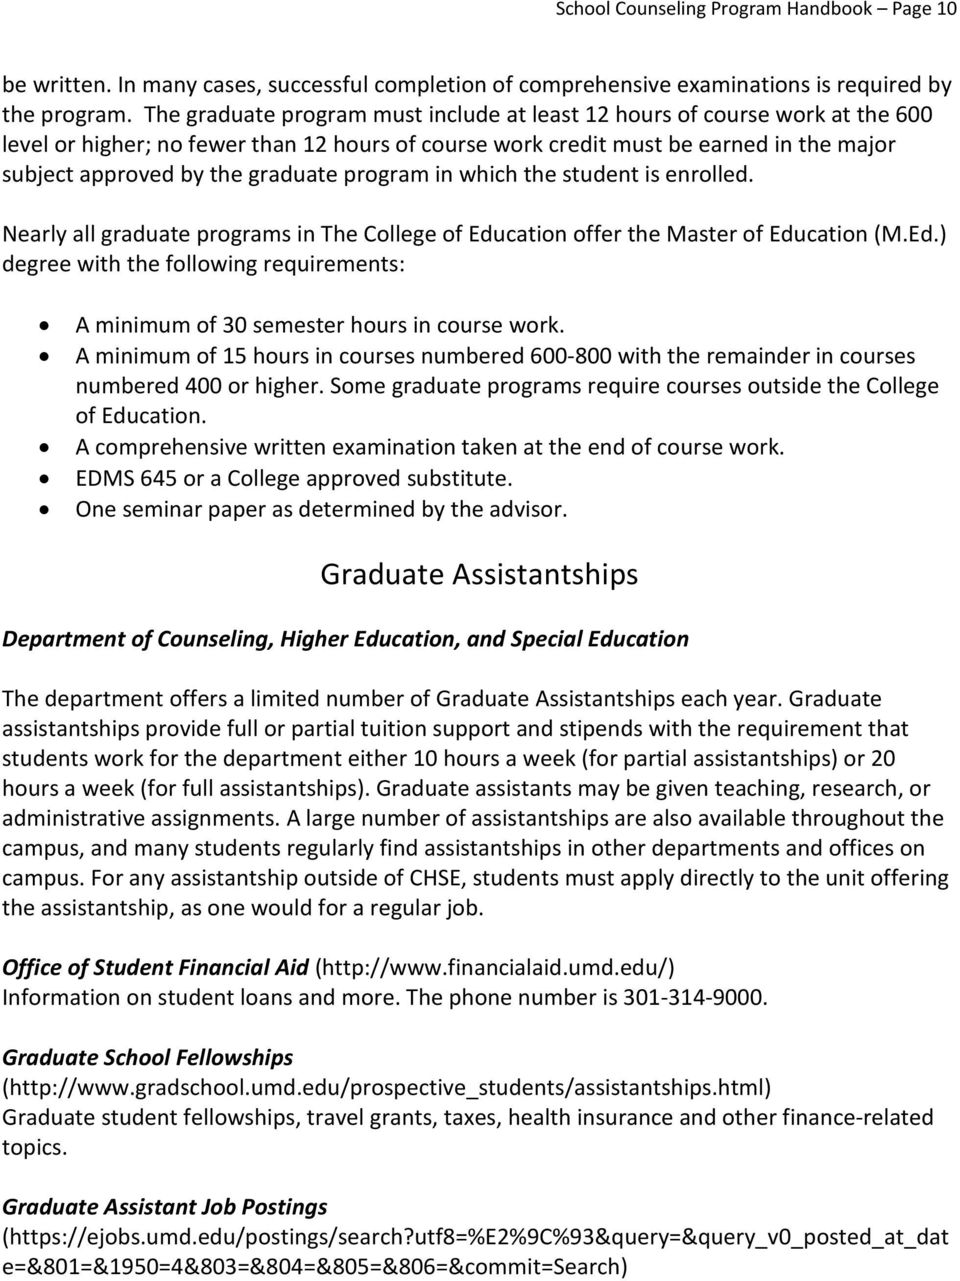 graduate program in which the student is enrolled. Nearly all graduate programs in The College of Education offer the Master of Education (M.Ed.) degree with the following requirements: A minimum of 30 semester hours in course work.